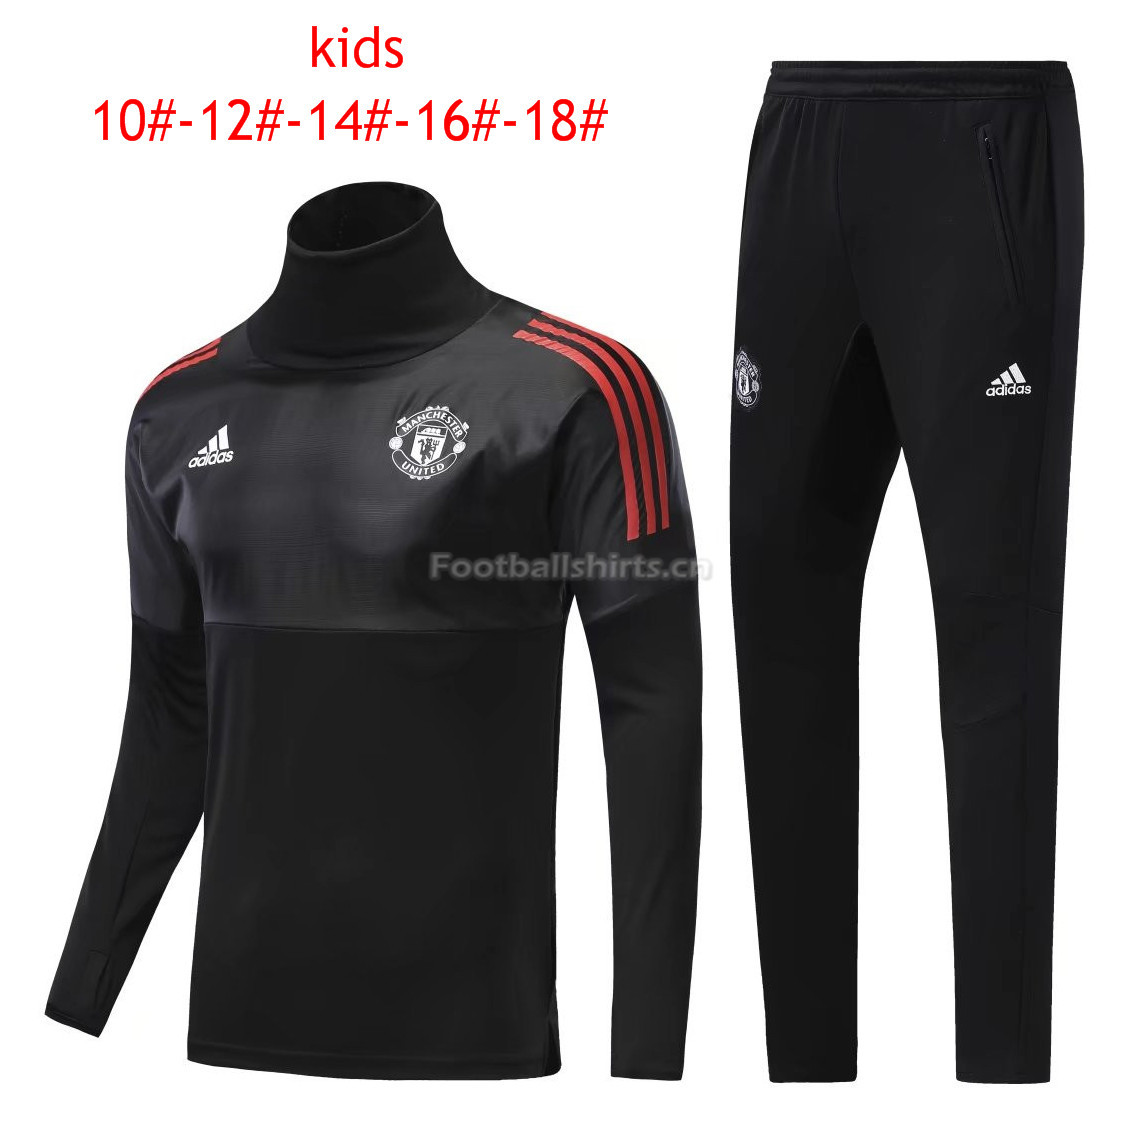 Kids Manchester United Training Suit Turtle Neck Black 2017/18